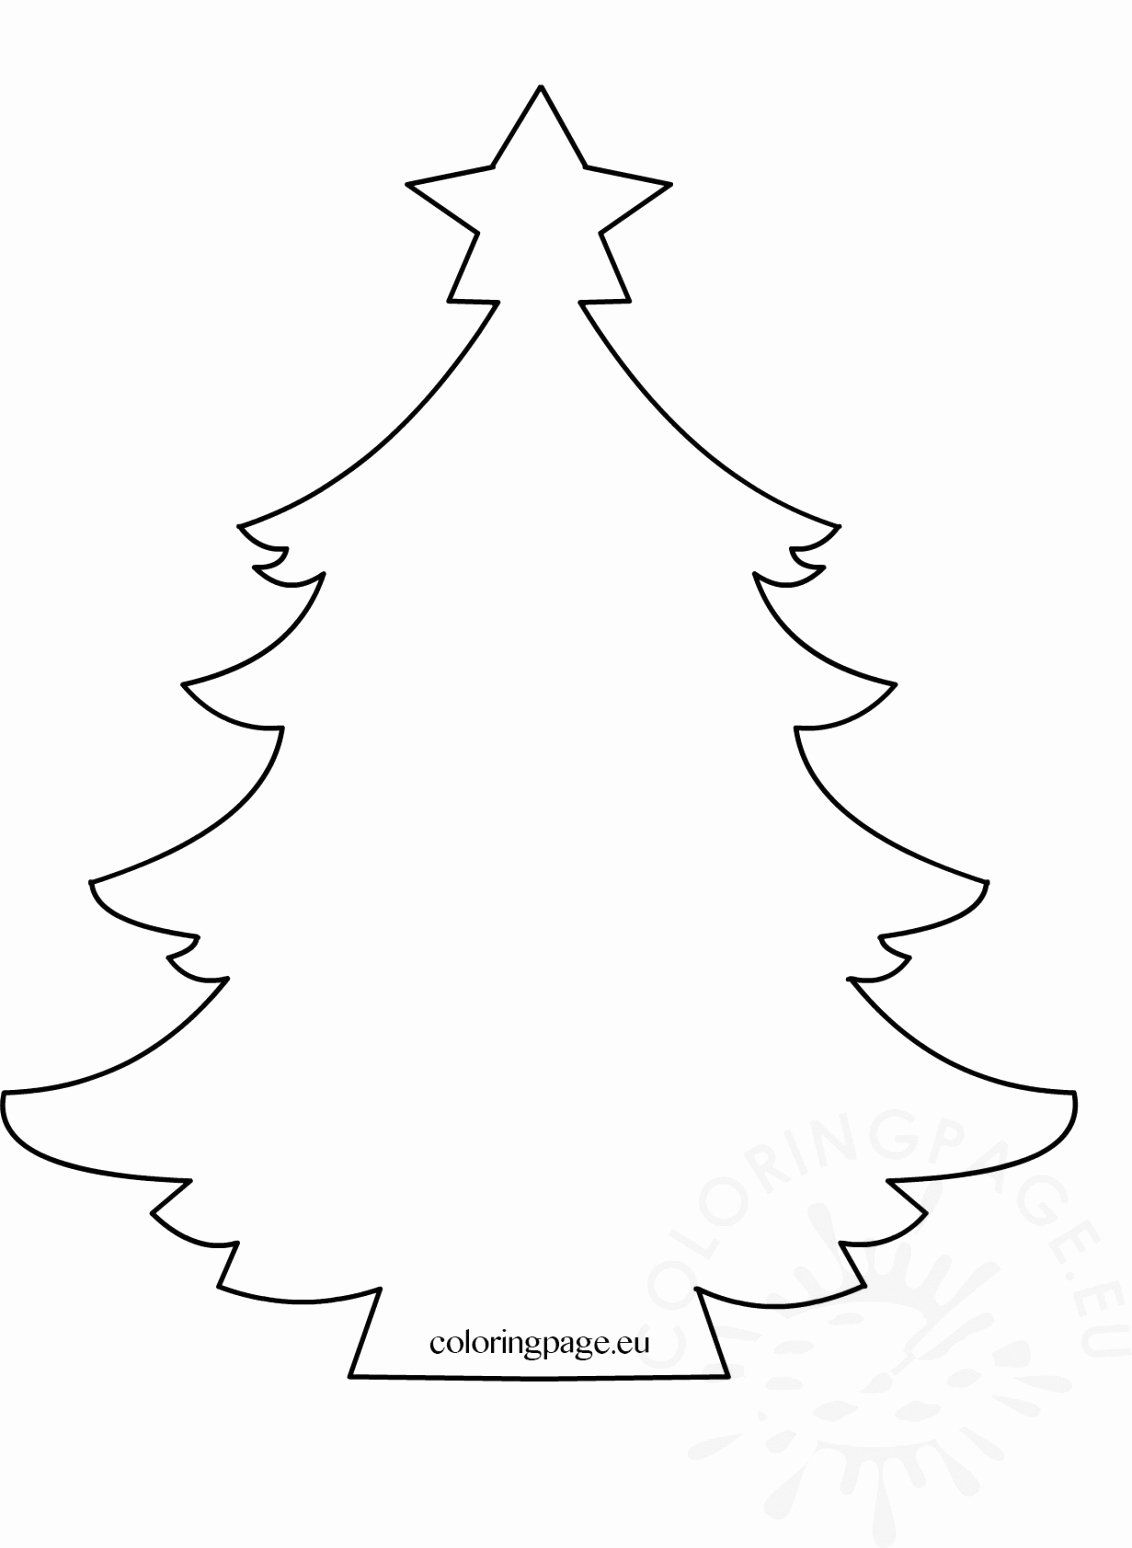 Free Christmas Tree Coloring Pages Beautiful Of Larch Tree Coloring Pag Christmas Tree Template Christmas Tree Coloring Page Printable Christmas Coloring Pages